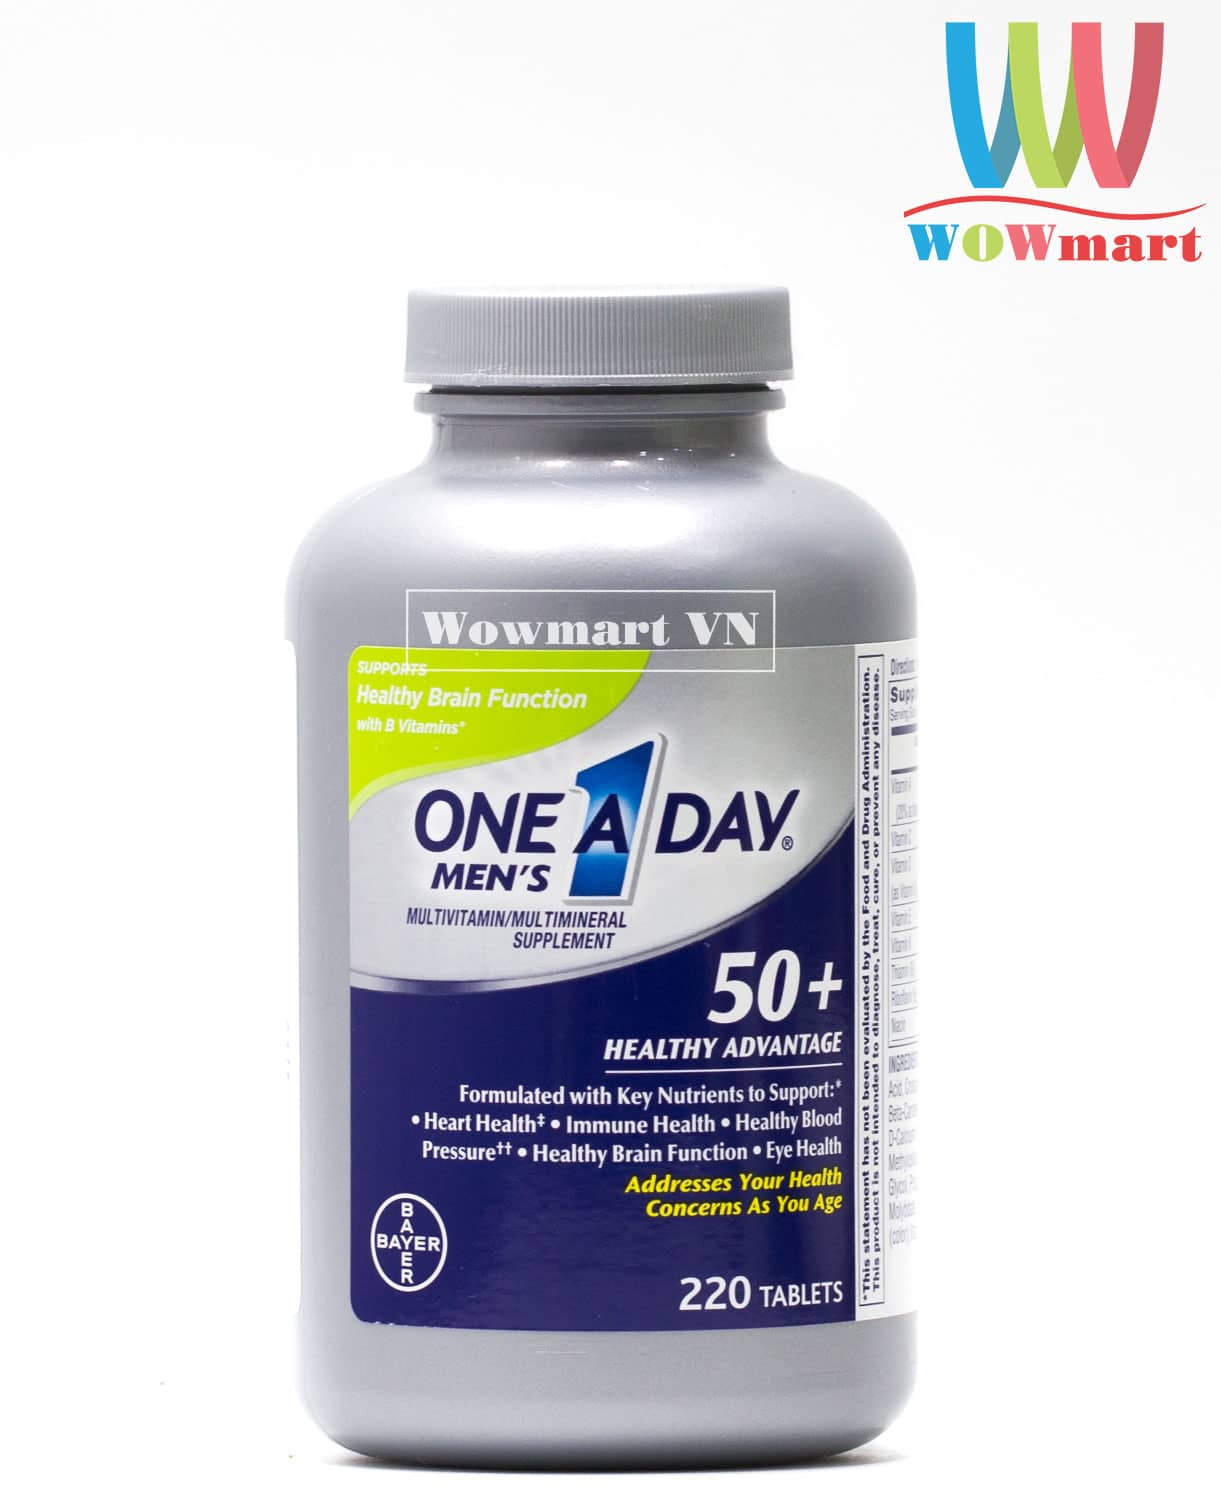 thuoc-one-a-day-men-formula-300-vien-2018